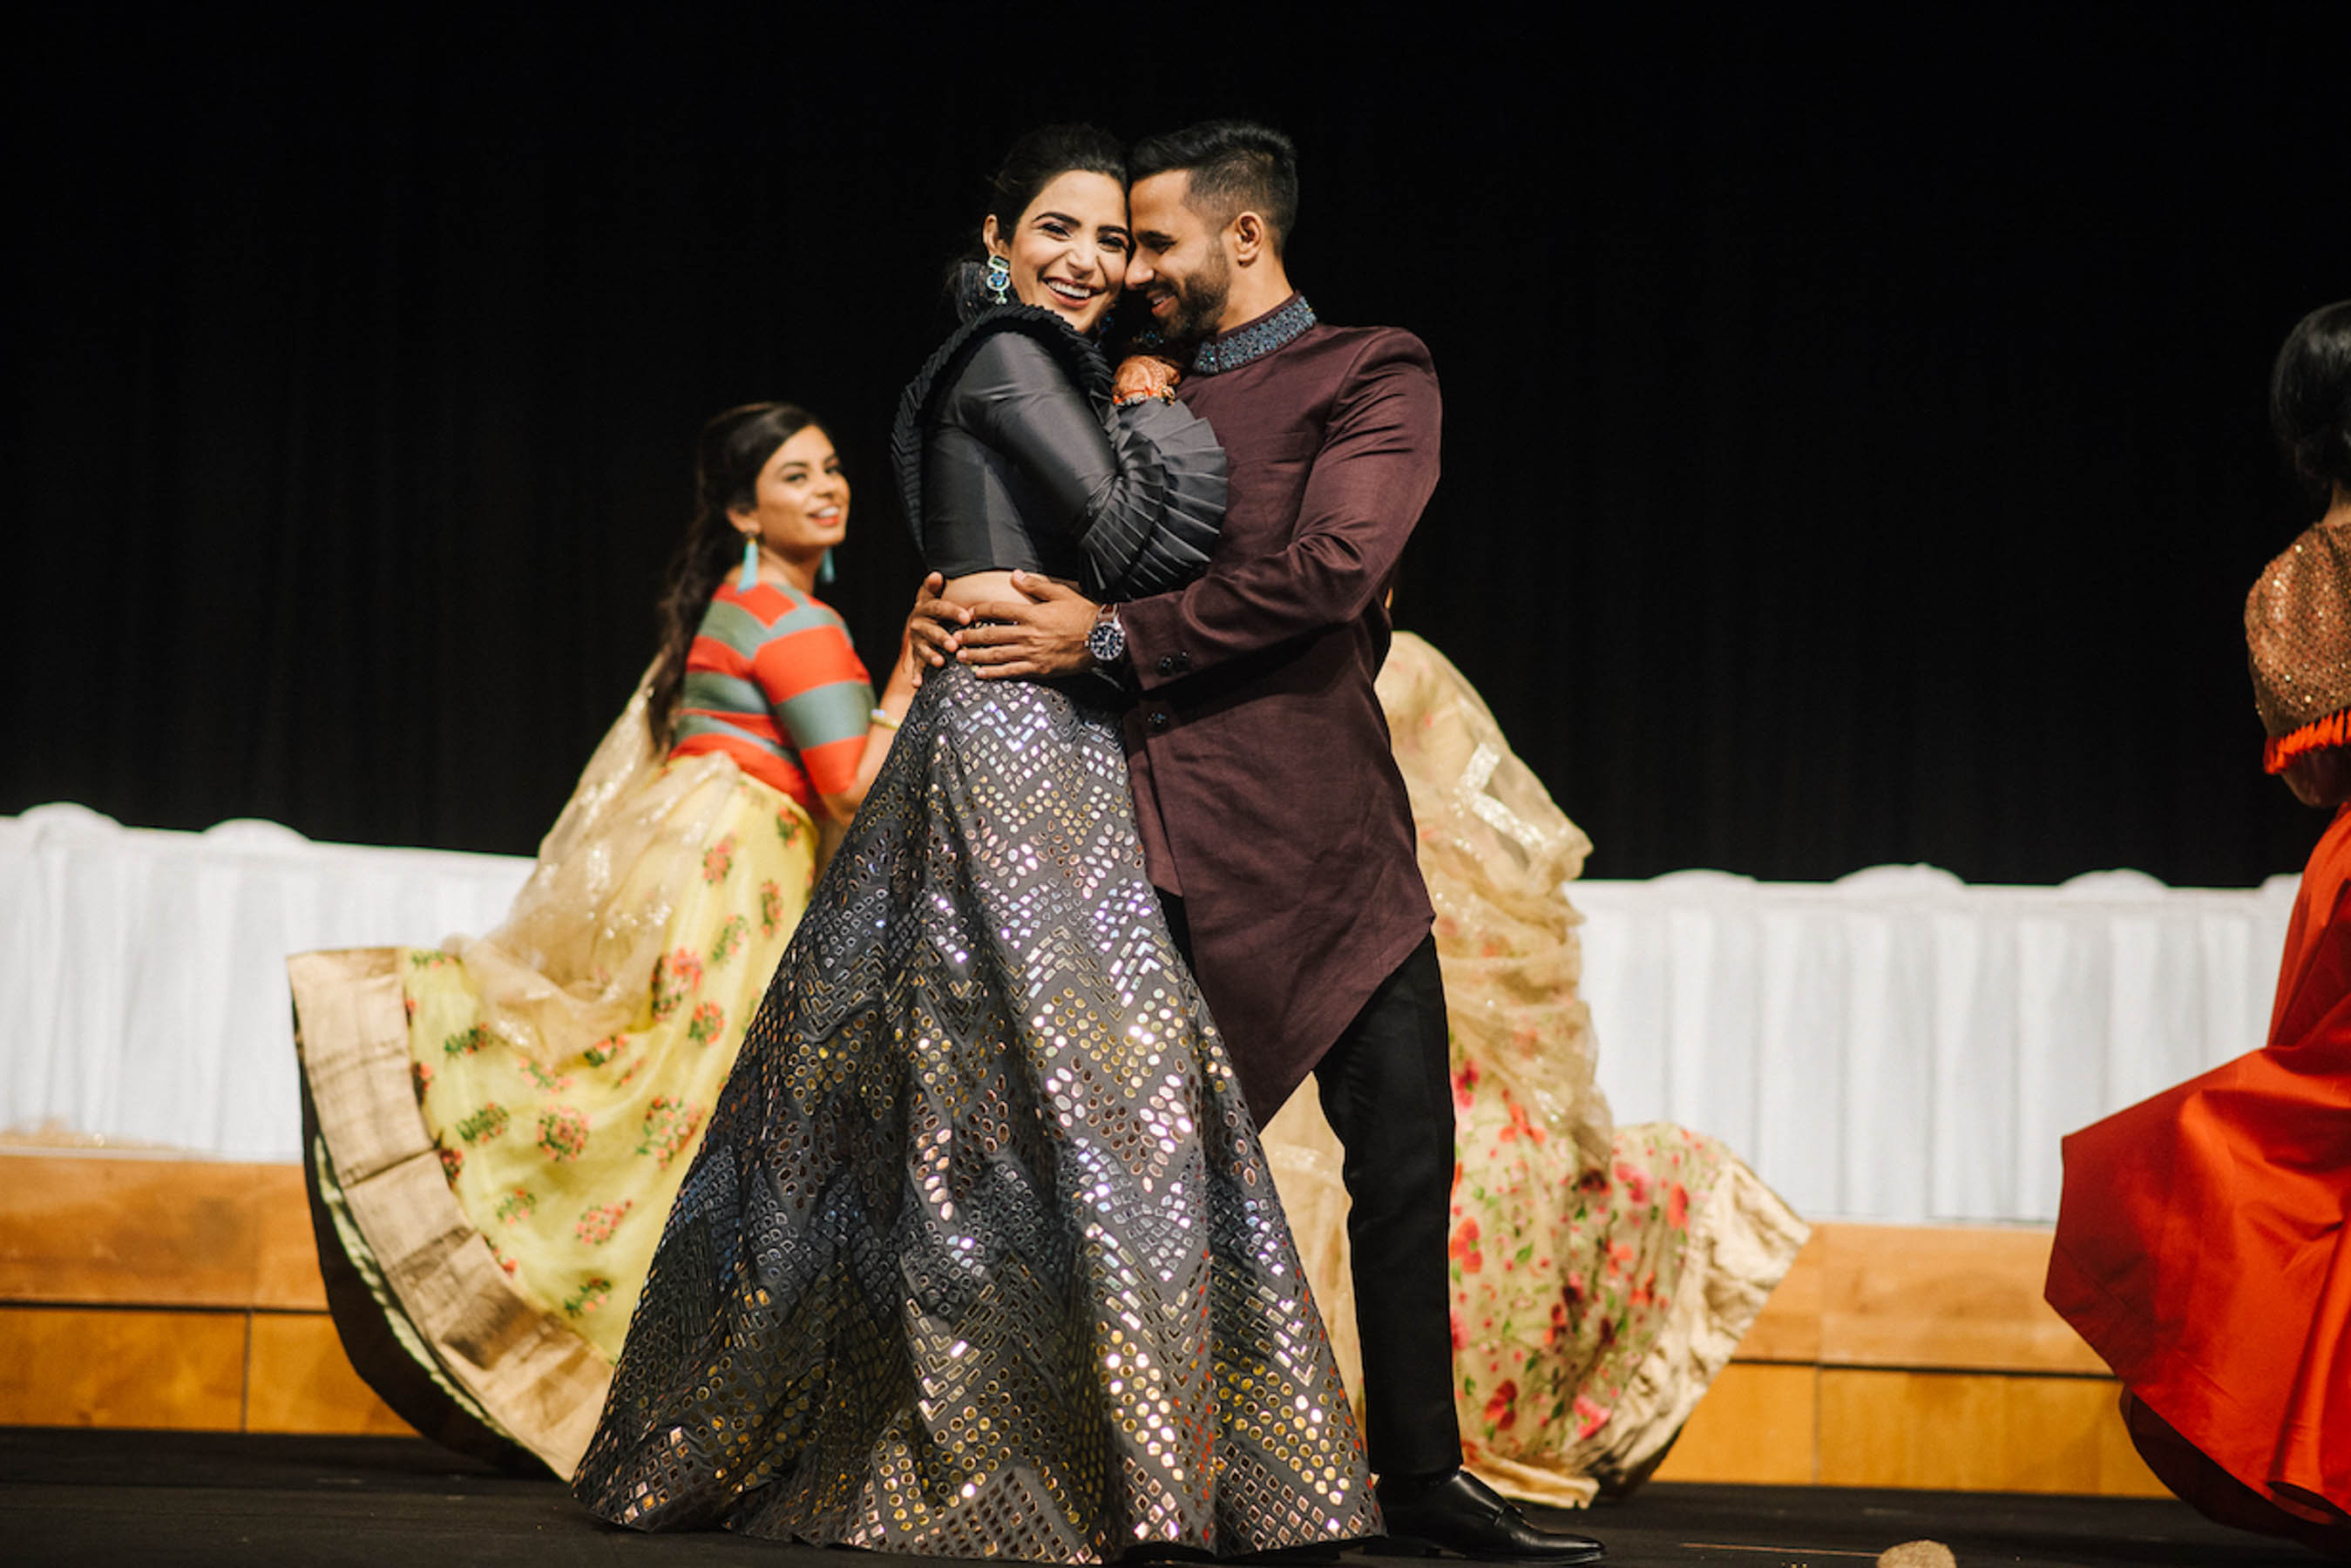 Melbourne bride and groom on their Sangeet party night at Crown Casino Melbourne.